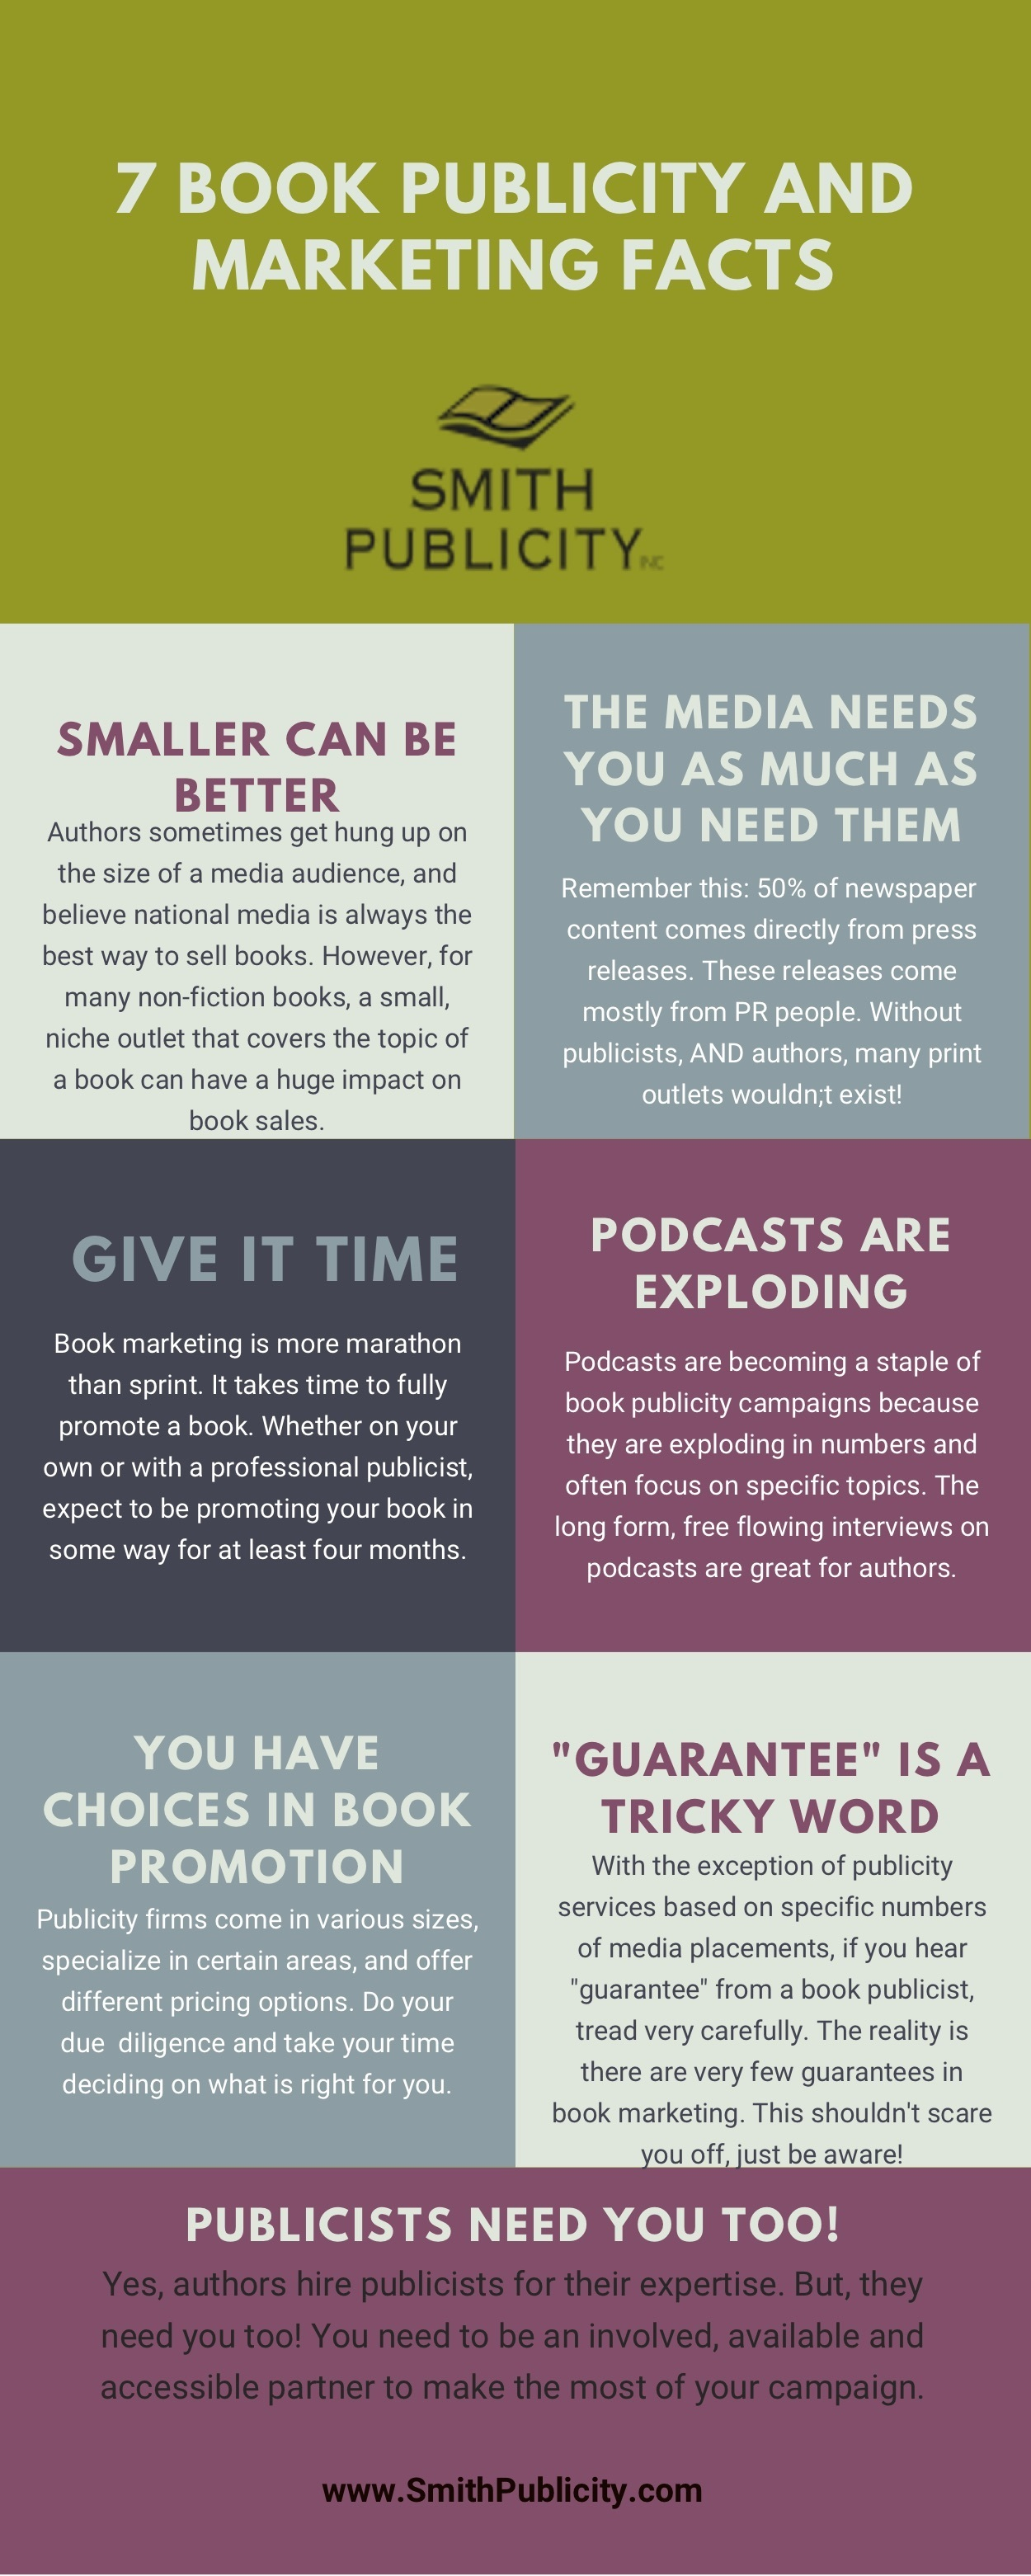 7 book marketing and publicity facts. An infographic by Smith Publicity on how to start small, work on podcasts, develop a strategy for marketing your own book or hire a book marketing firm instead.